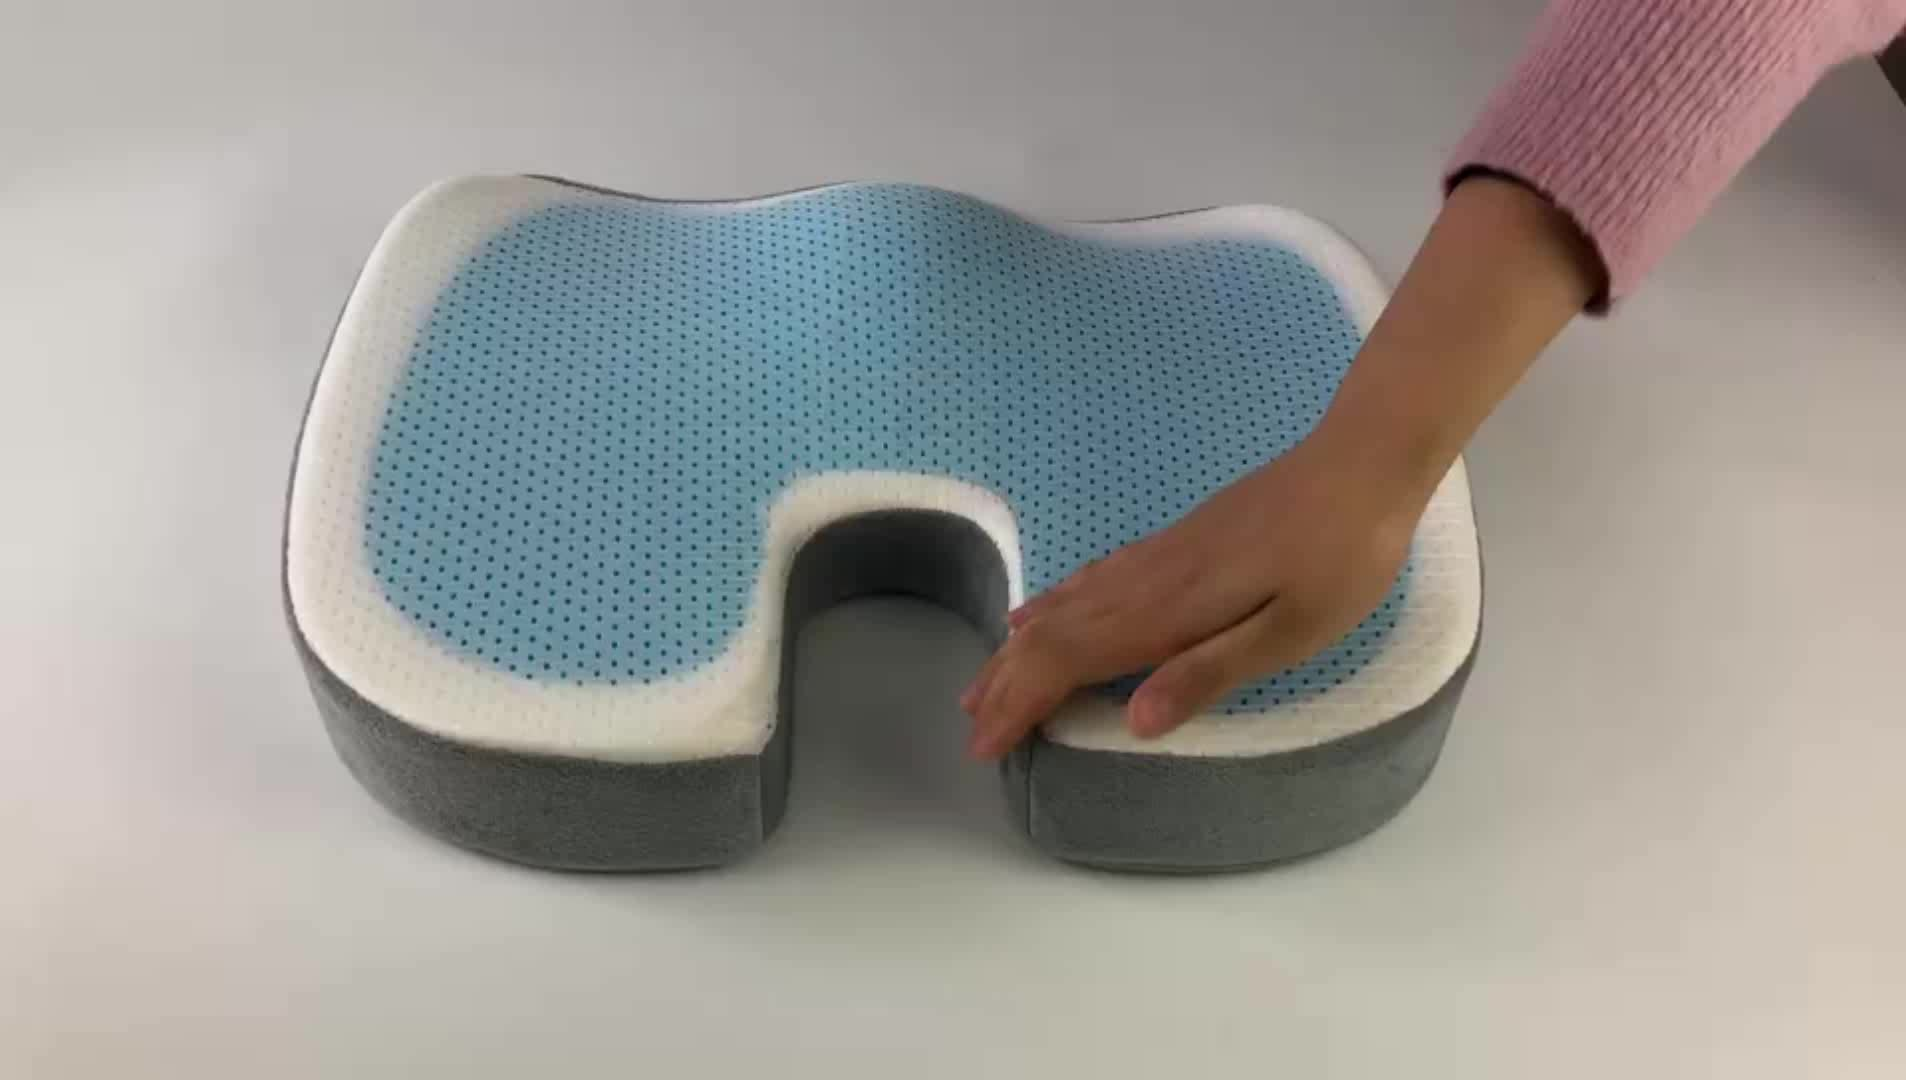 Gel Pads Seat Cushion for Sciatica, Chronic Back, and Tailbone Pain